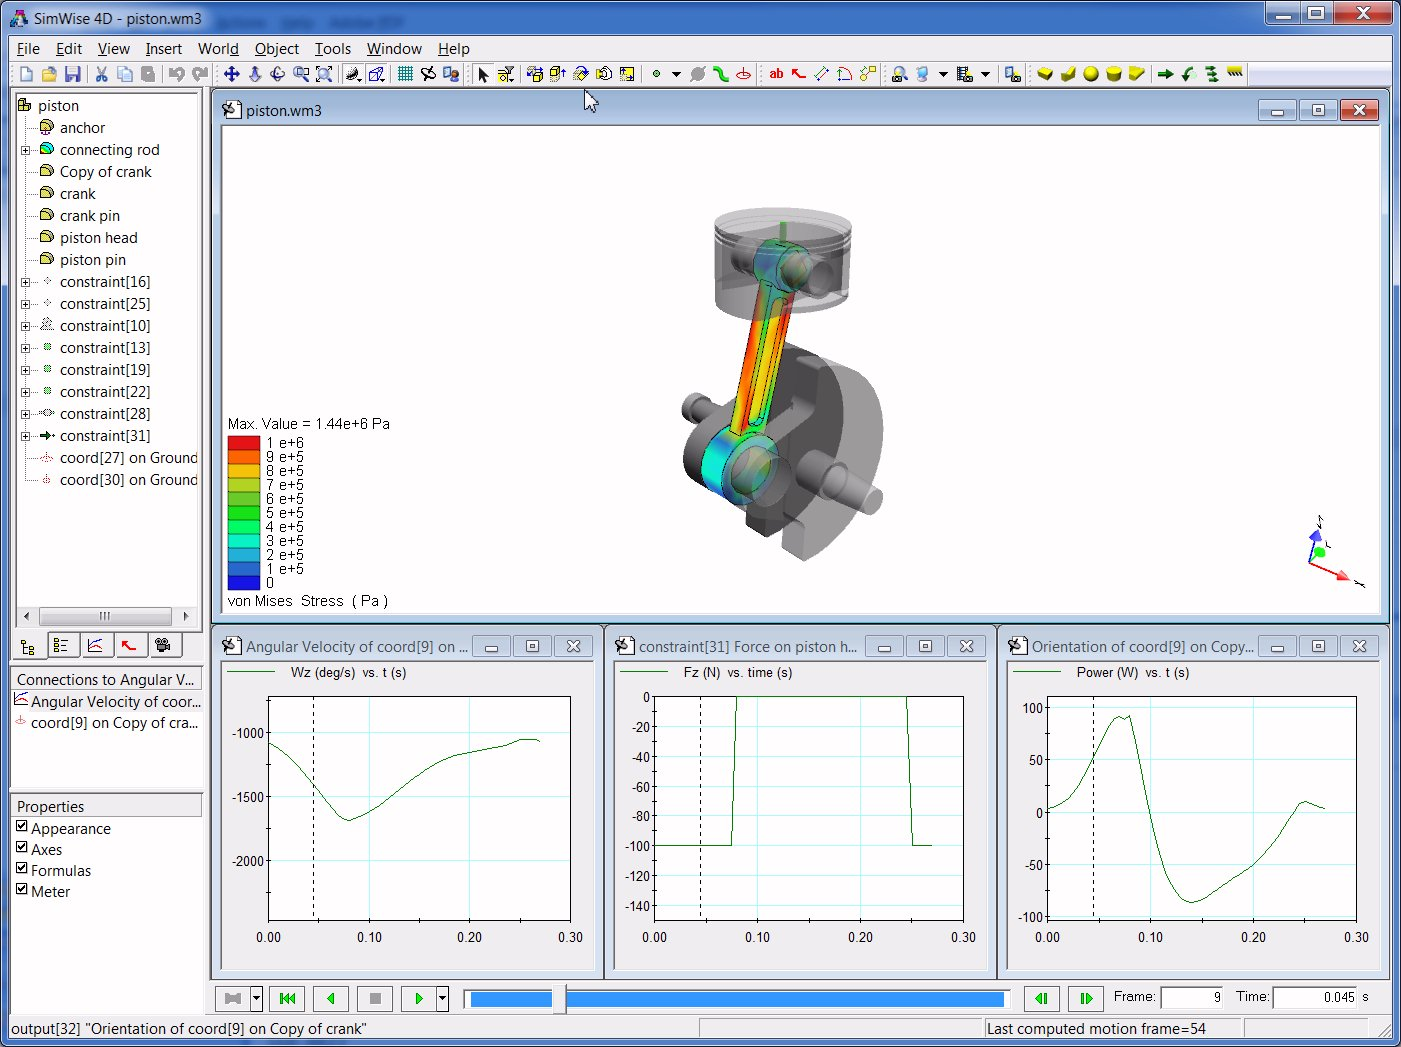 Mechanical engineering gim mechanism software (kinematics.